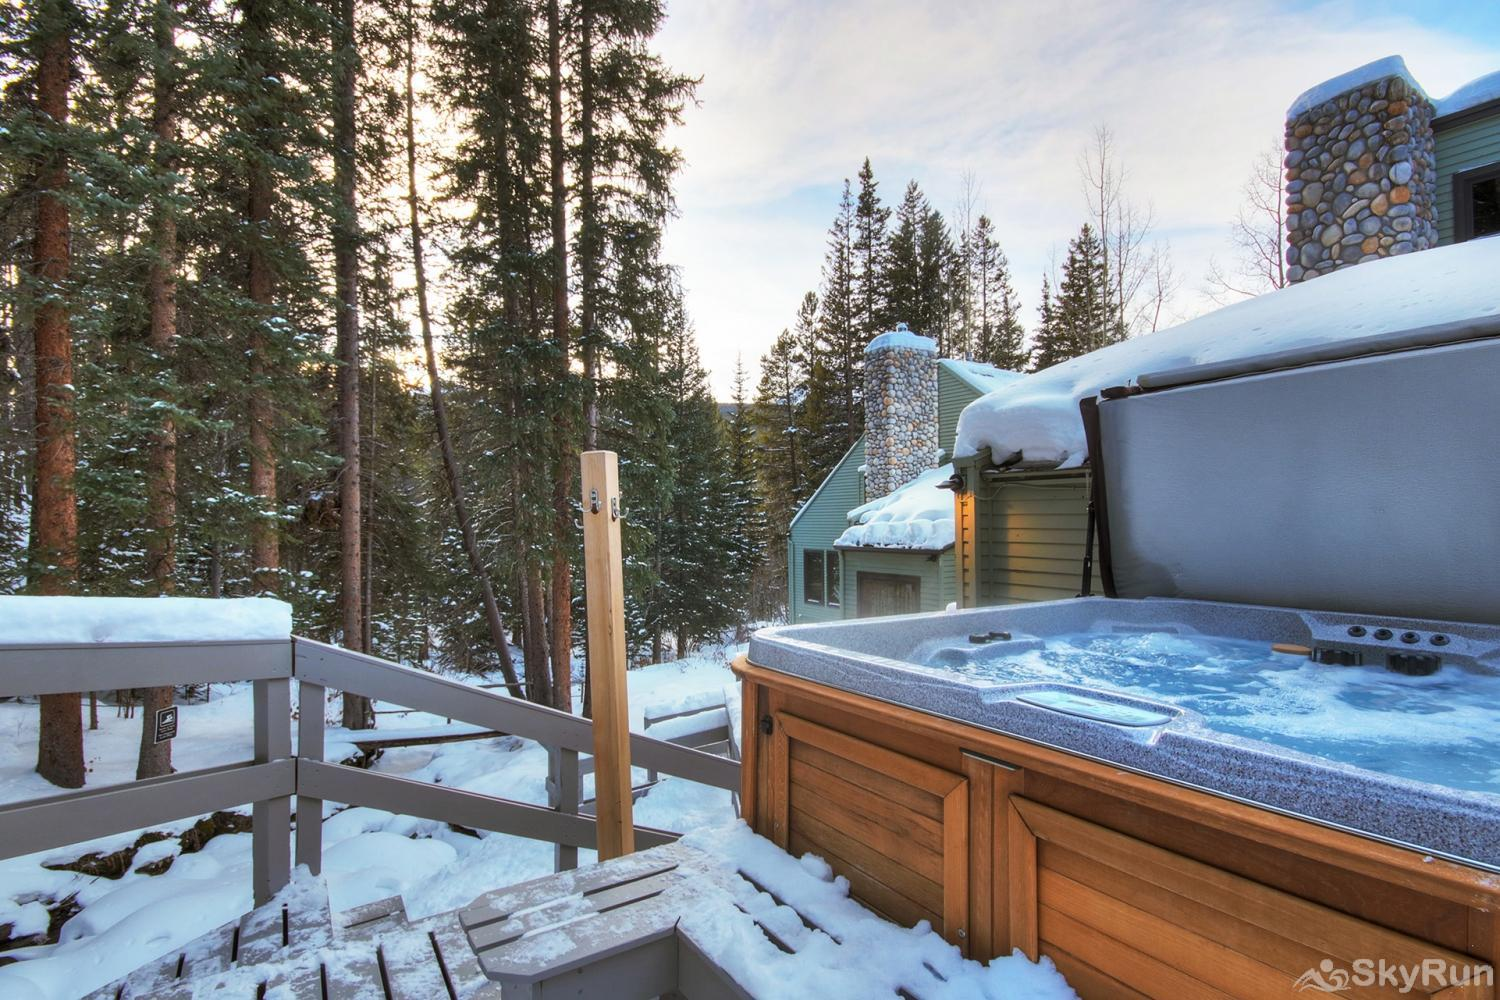 Creekside Chateau Enjoy a soak in your private outdoor hot tub